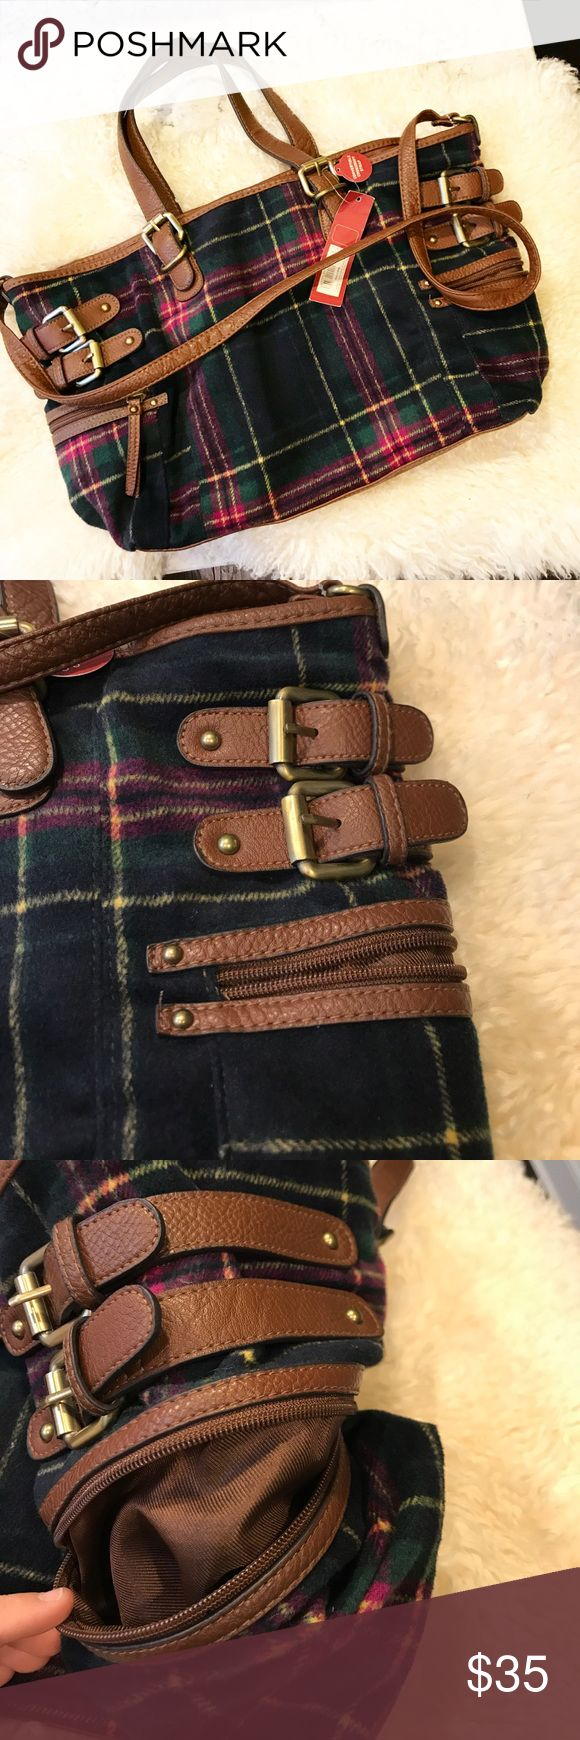 Merona flannel boho cross body bag New with tags! Very soft flannel material. Wear on your shoulder, arm, or cross body style. Many pockets for organization. This brand is sold at Target. Perfect fall & winter purse. Merona Bags